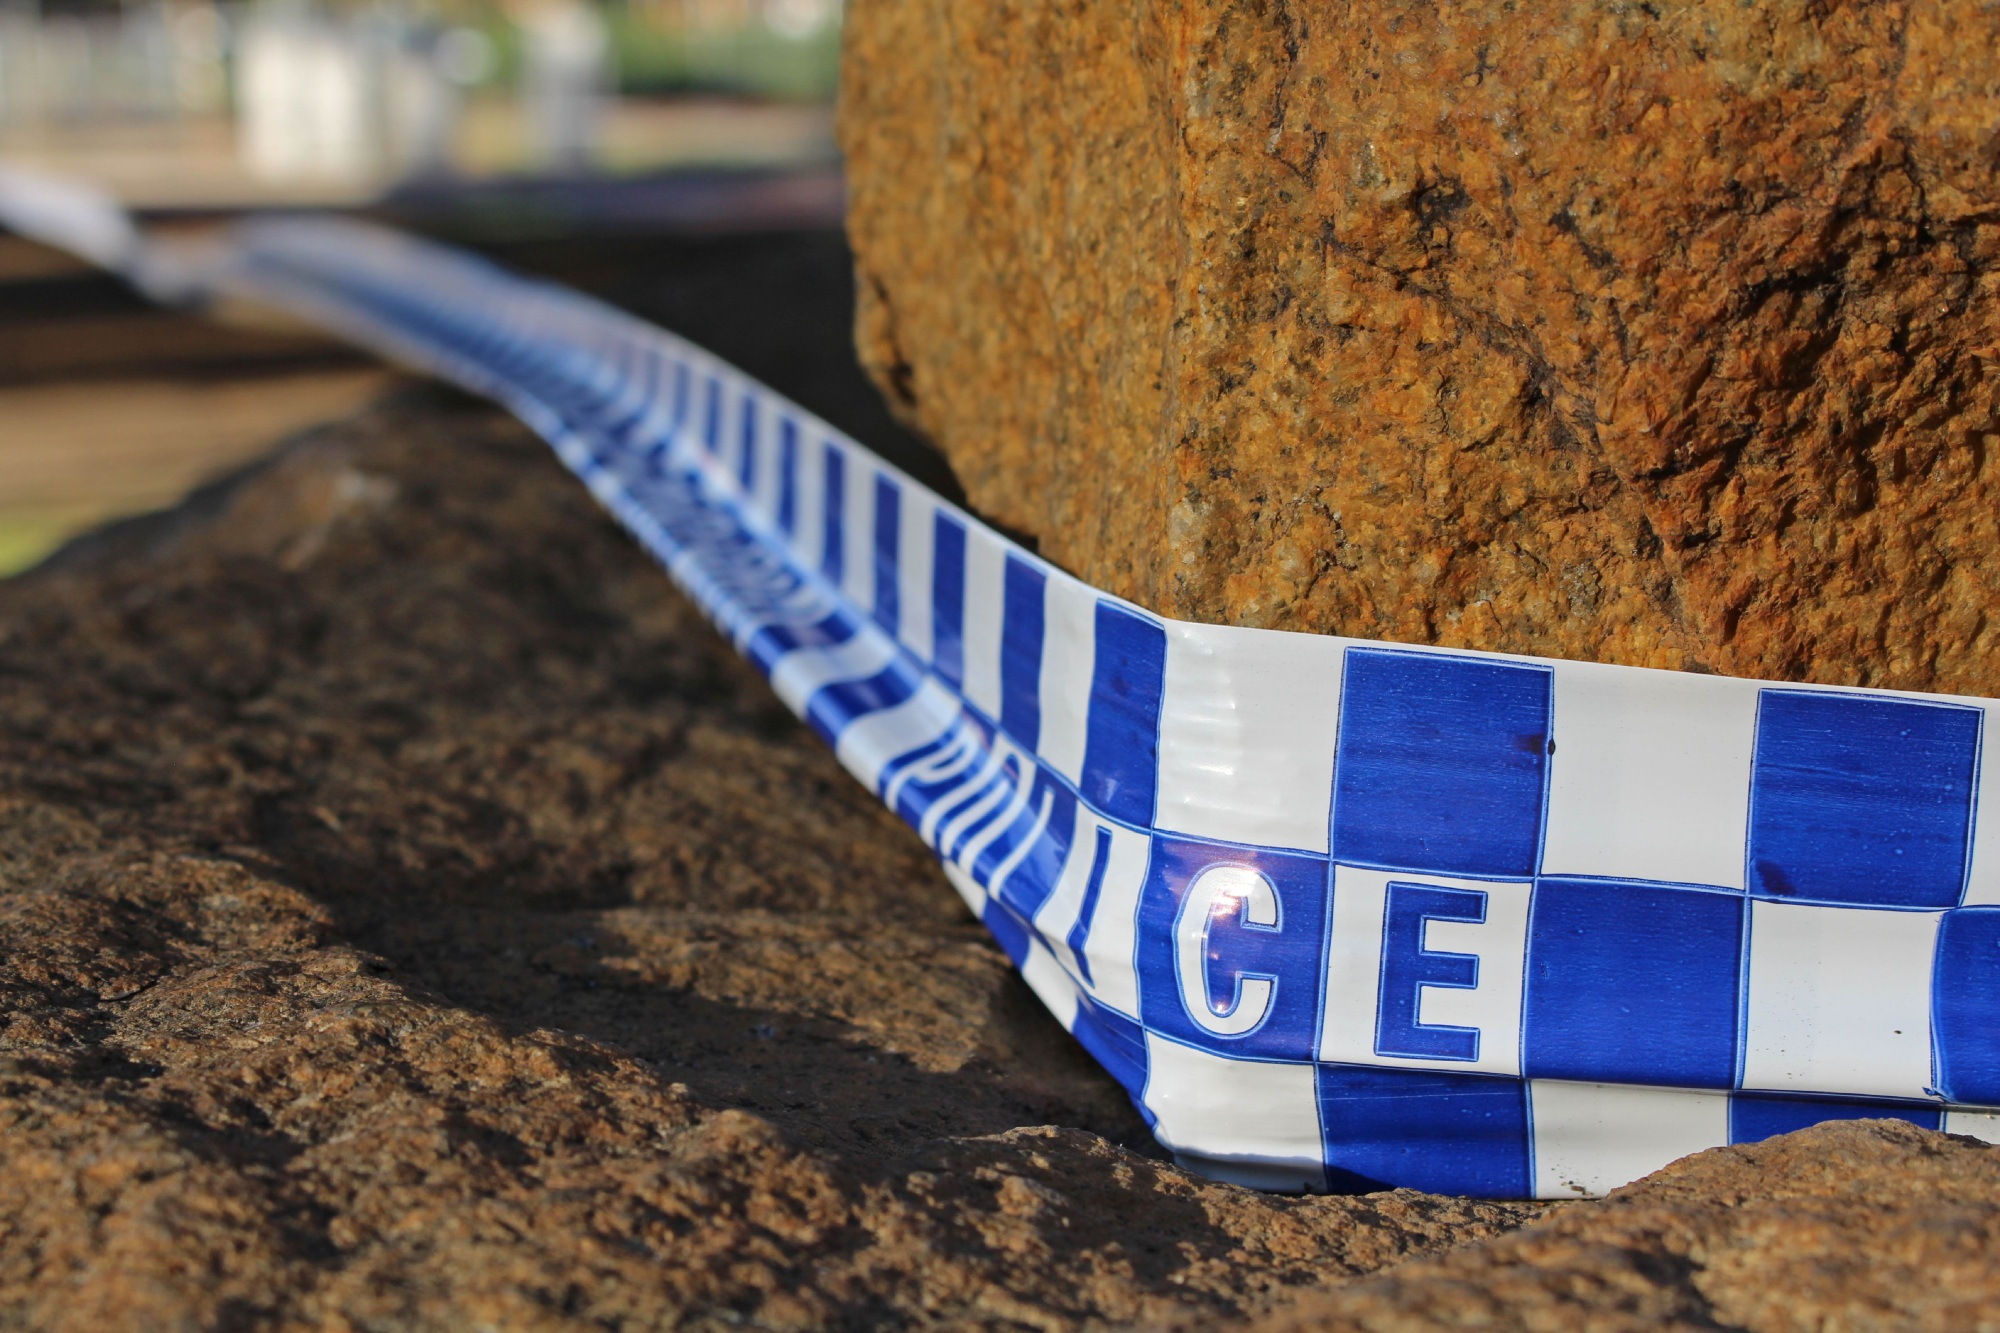 Forrestfield police charge two homeless men after damage to multiple properties